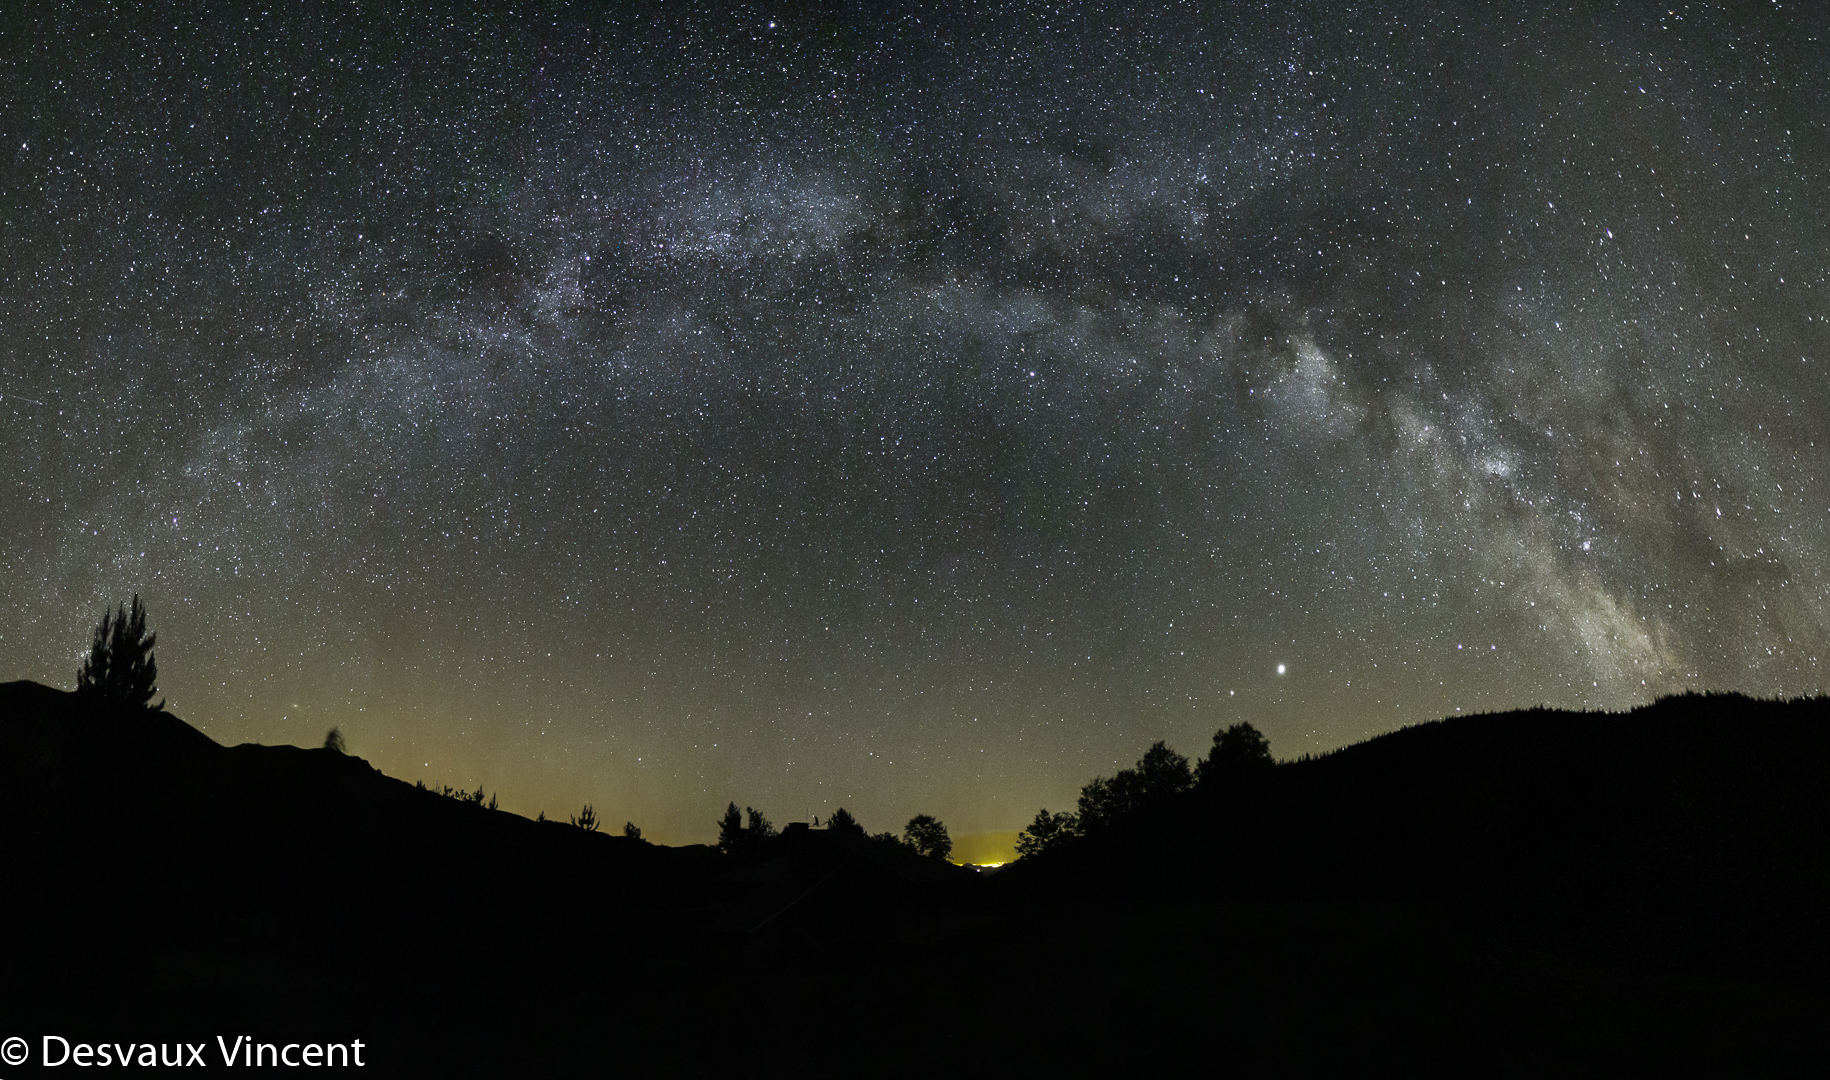 arche-galactique_conques_pyrenees-orientales_6d_6x8sec_3200iso_14mm_1080p.png